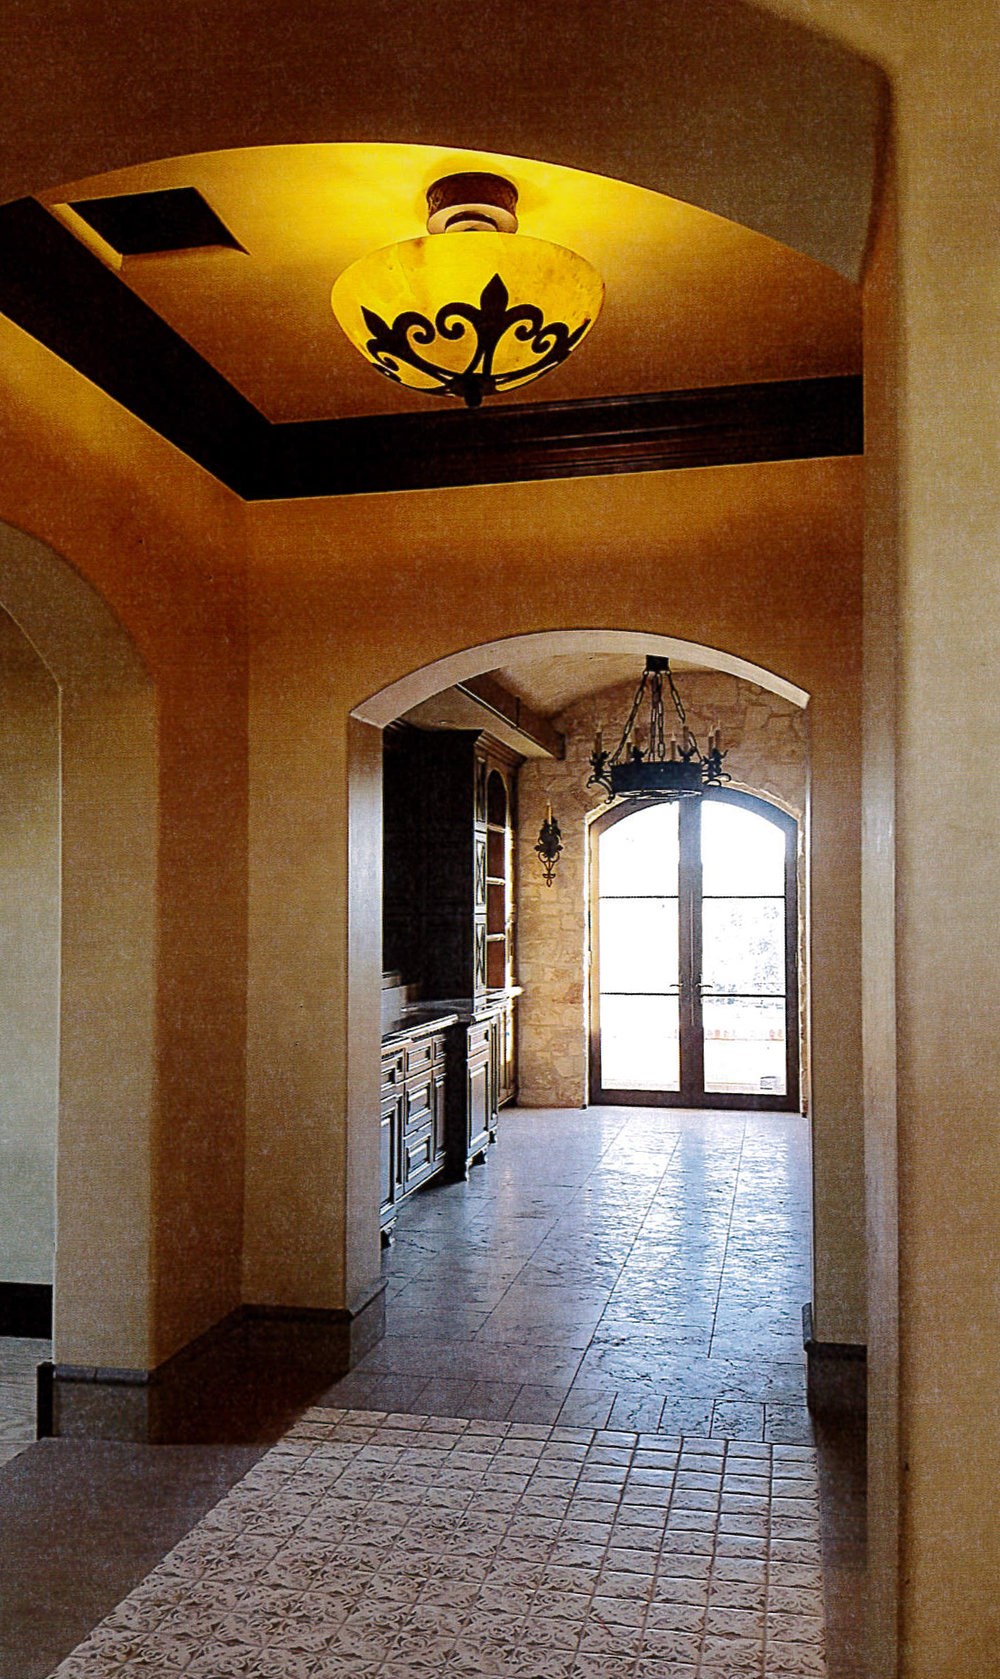 Las Vegas Hallway with Venetian Flush Mount Light.jpg